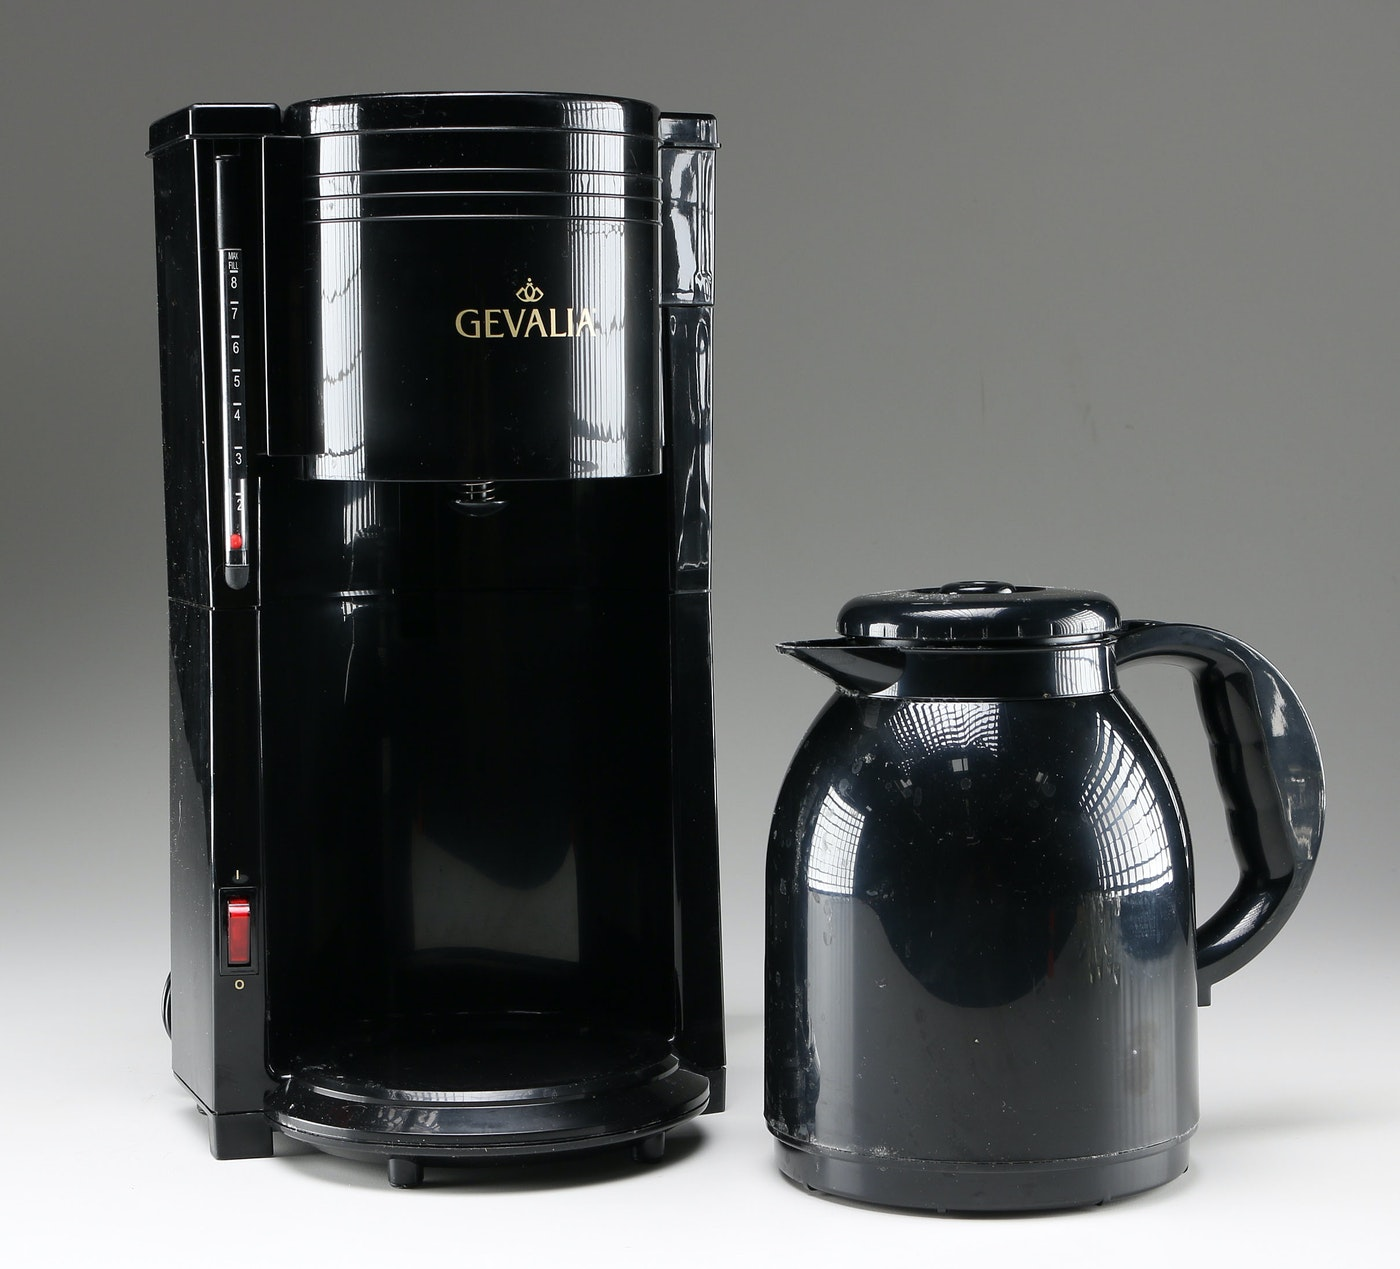 8-Cup Automatic Thermal Carafe Coffee Maker by Gevalia : EBTH